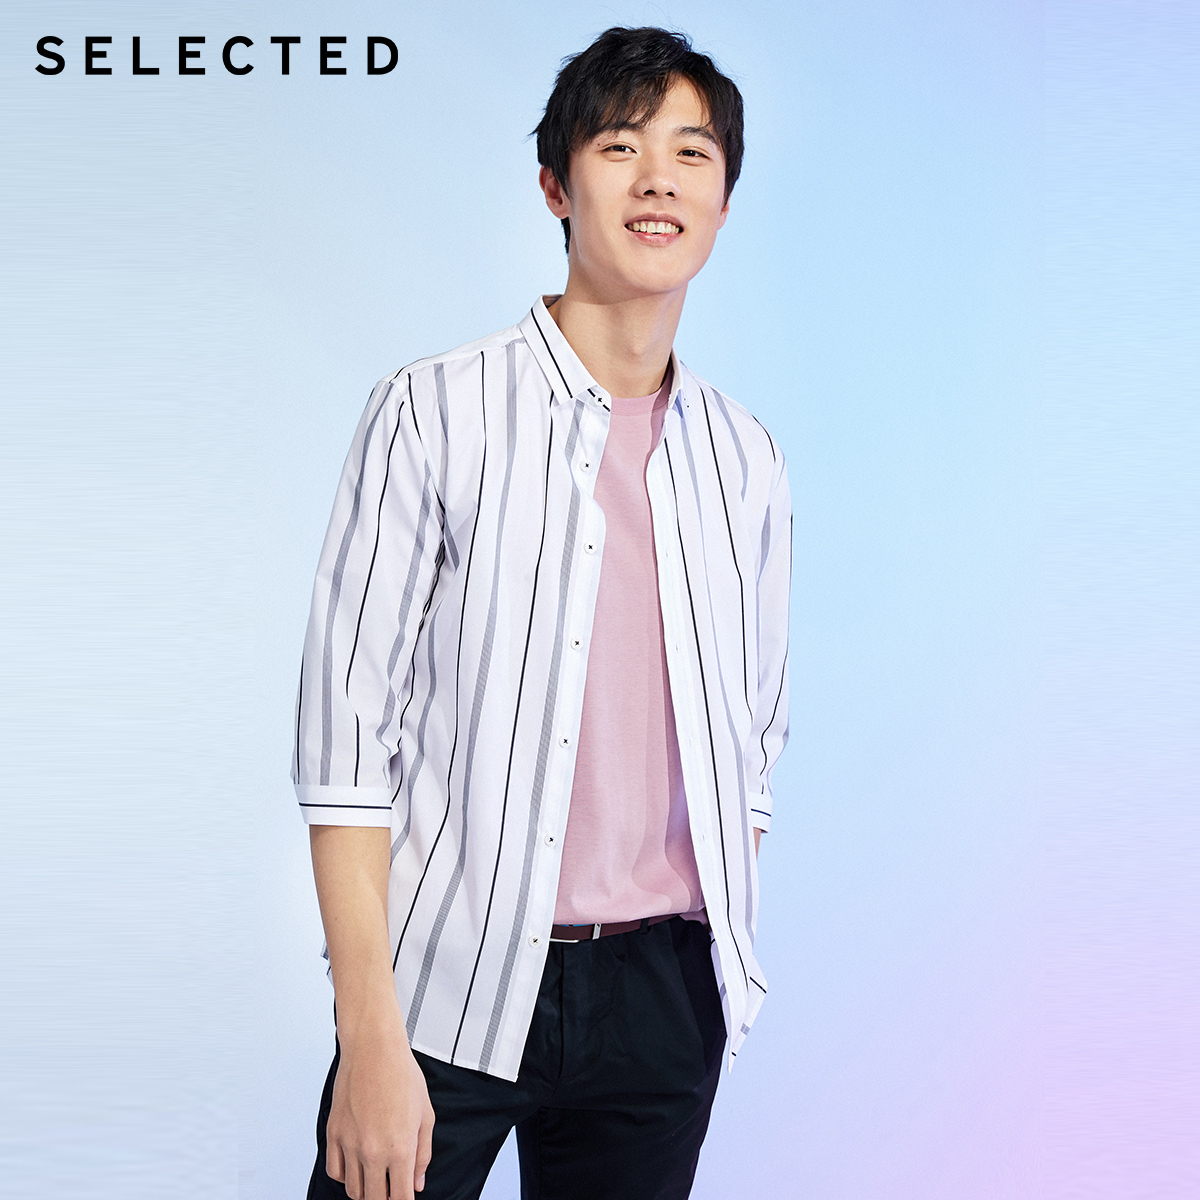 Selected Slade new pure cotton stripe fashion business leisure seven sleeve shirt men's s420131504